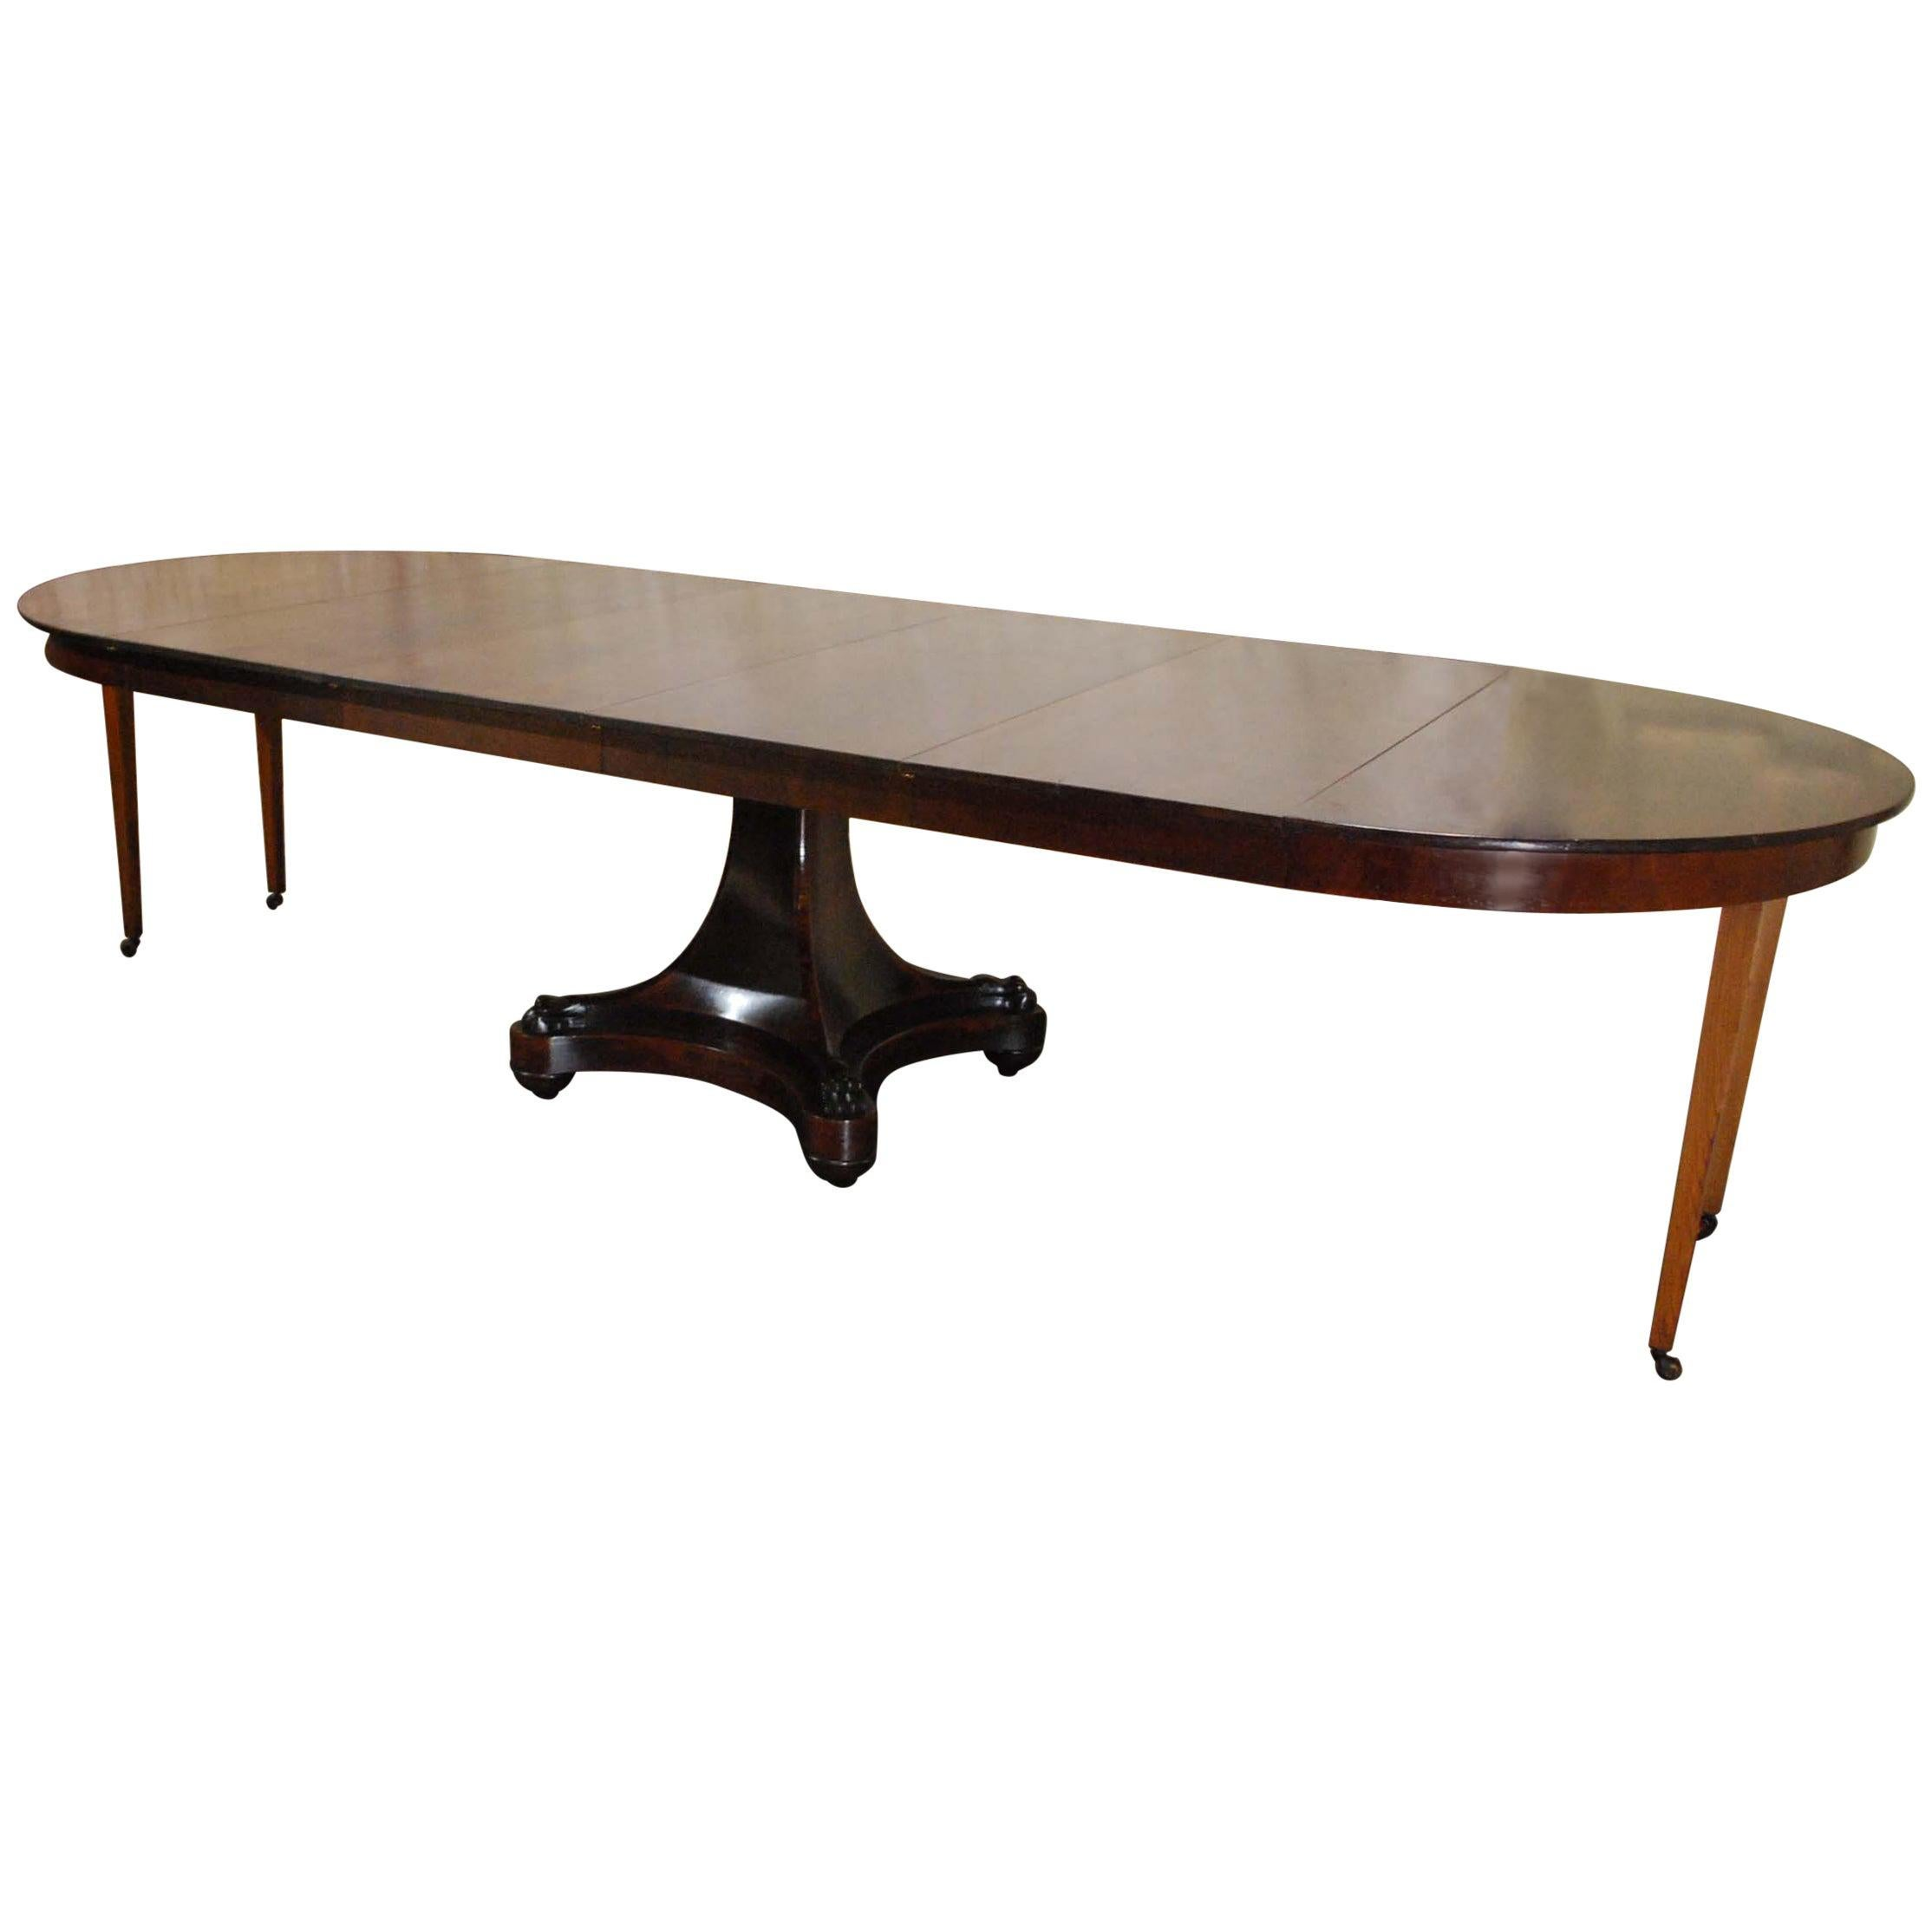 Antique 19th century Dutch Empire Extendable Mahogany Dining Table